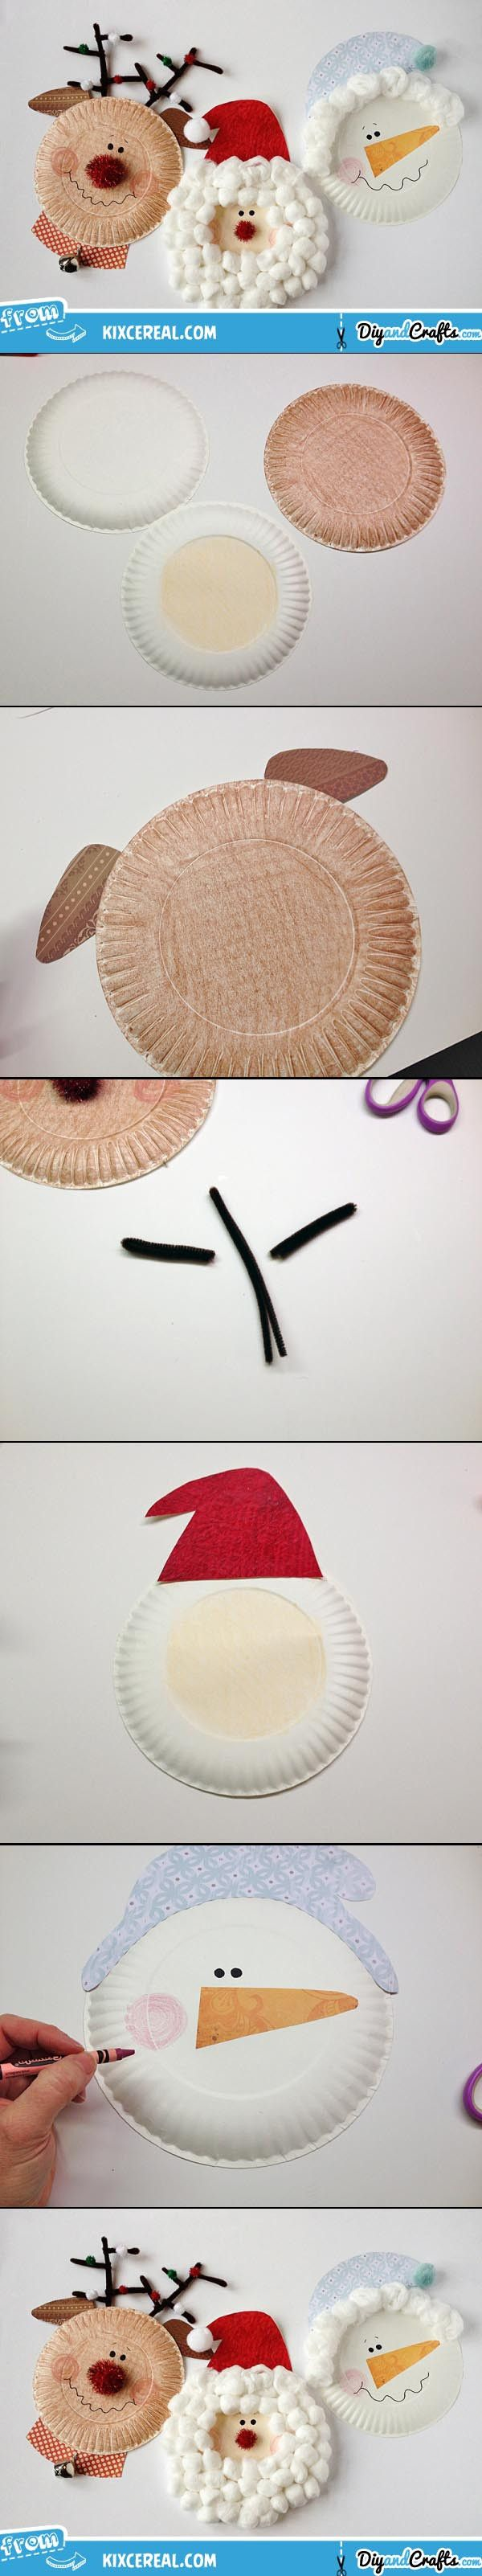 DIY Paper Plate Christmas Characters: Santa, Rudolph, Snowman